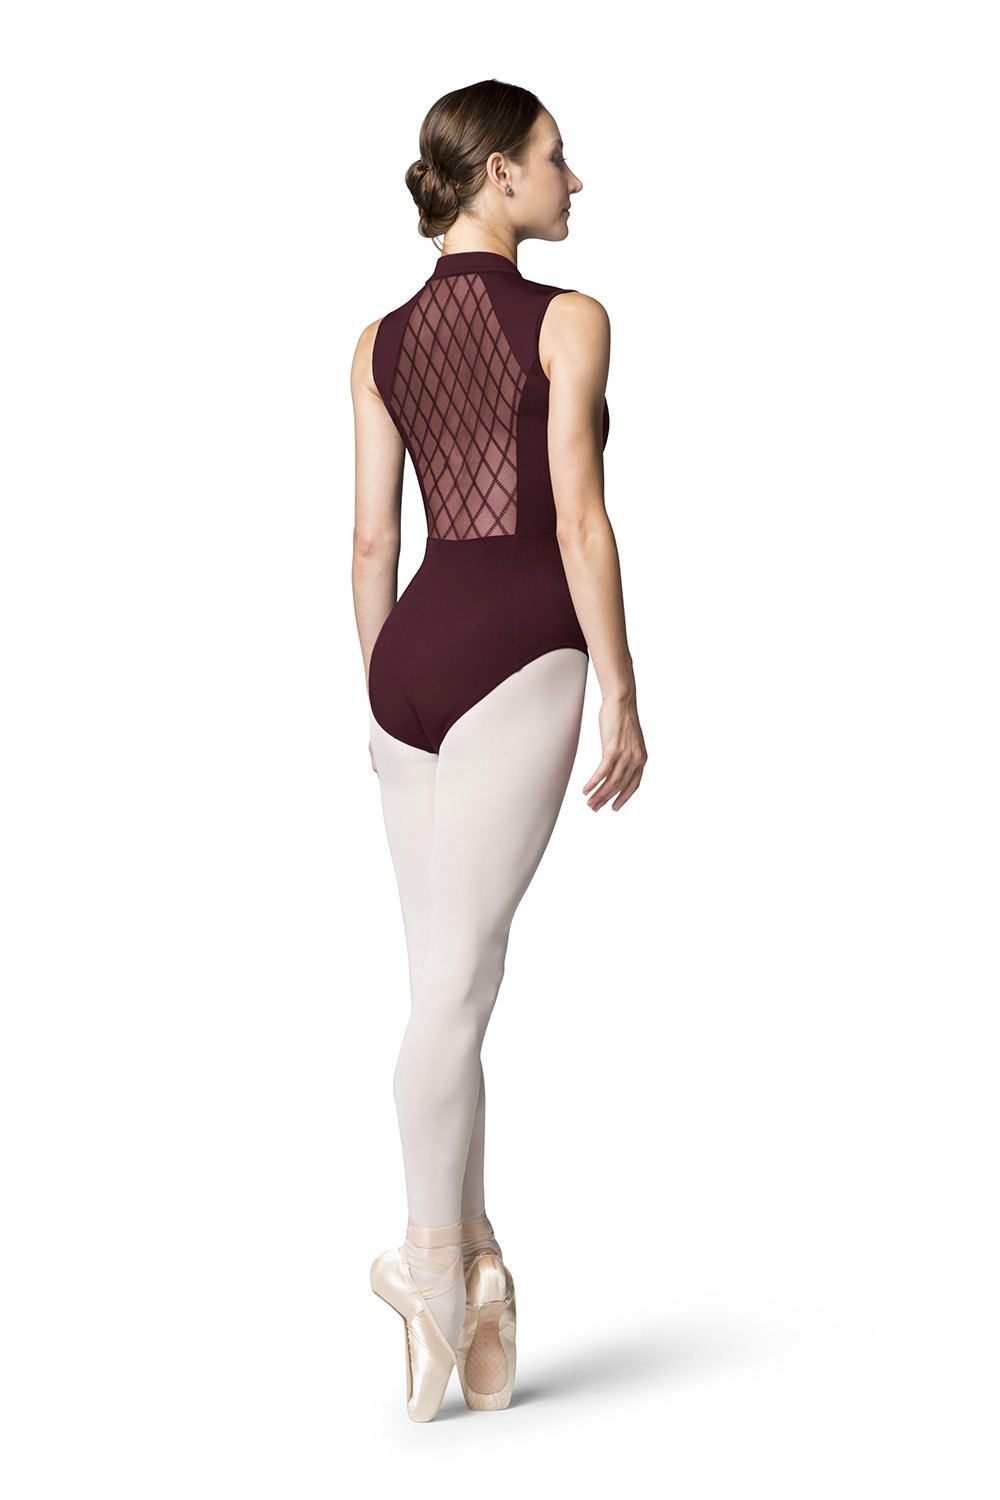 Aine Womens Short Sleeve Leotards